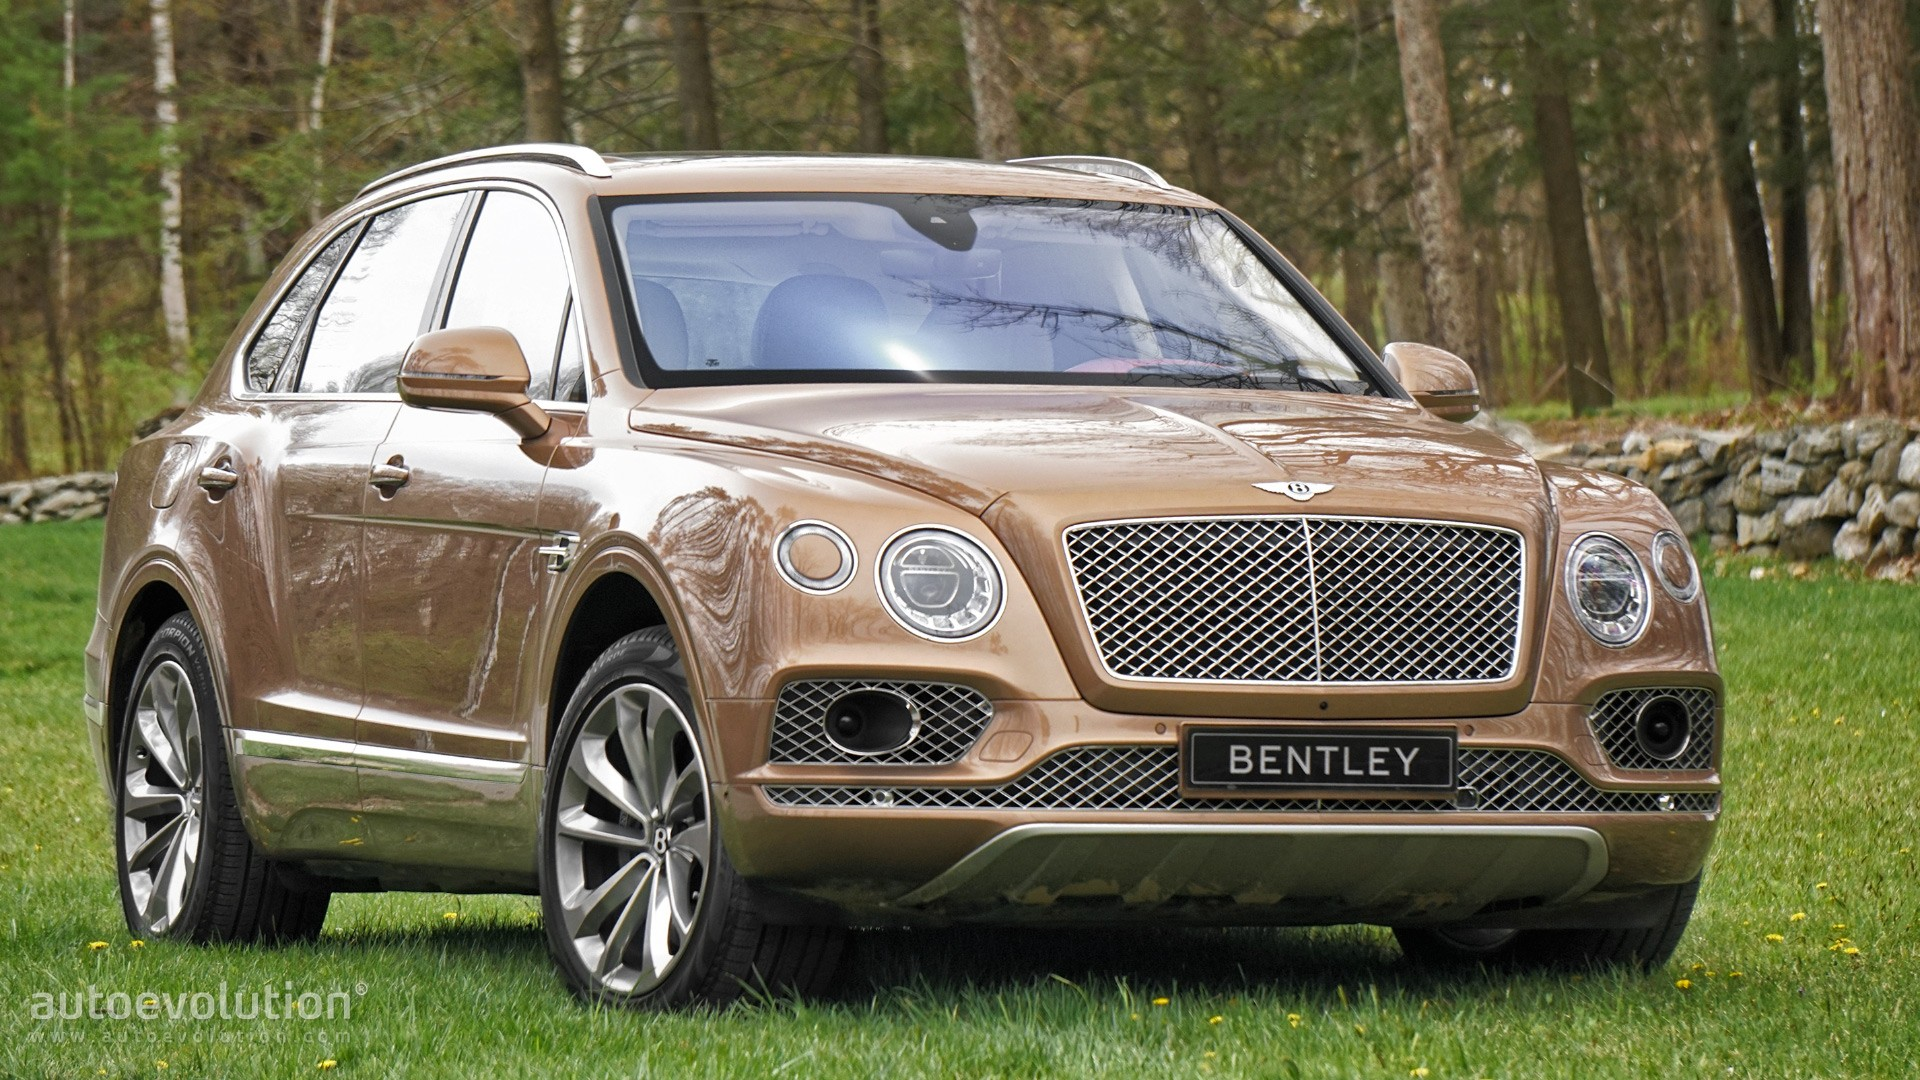 2016 BENTLEY Bentayga W12 Review - autoevolution